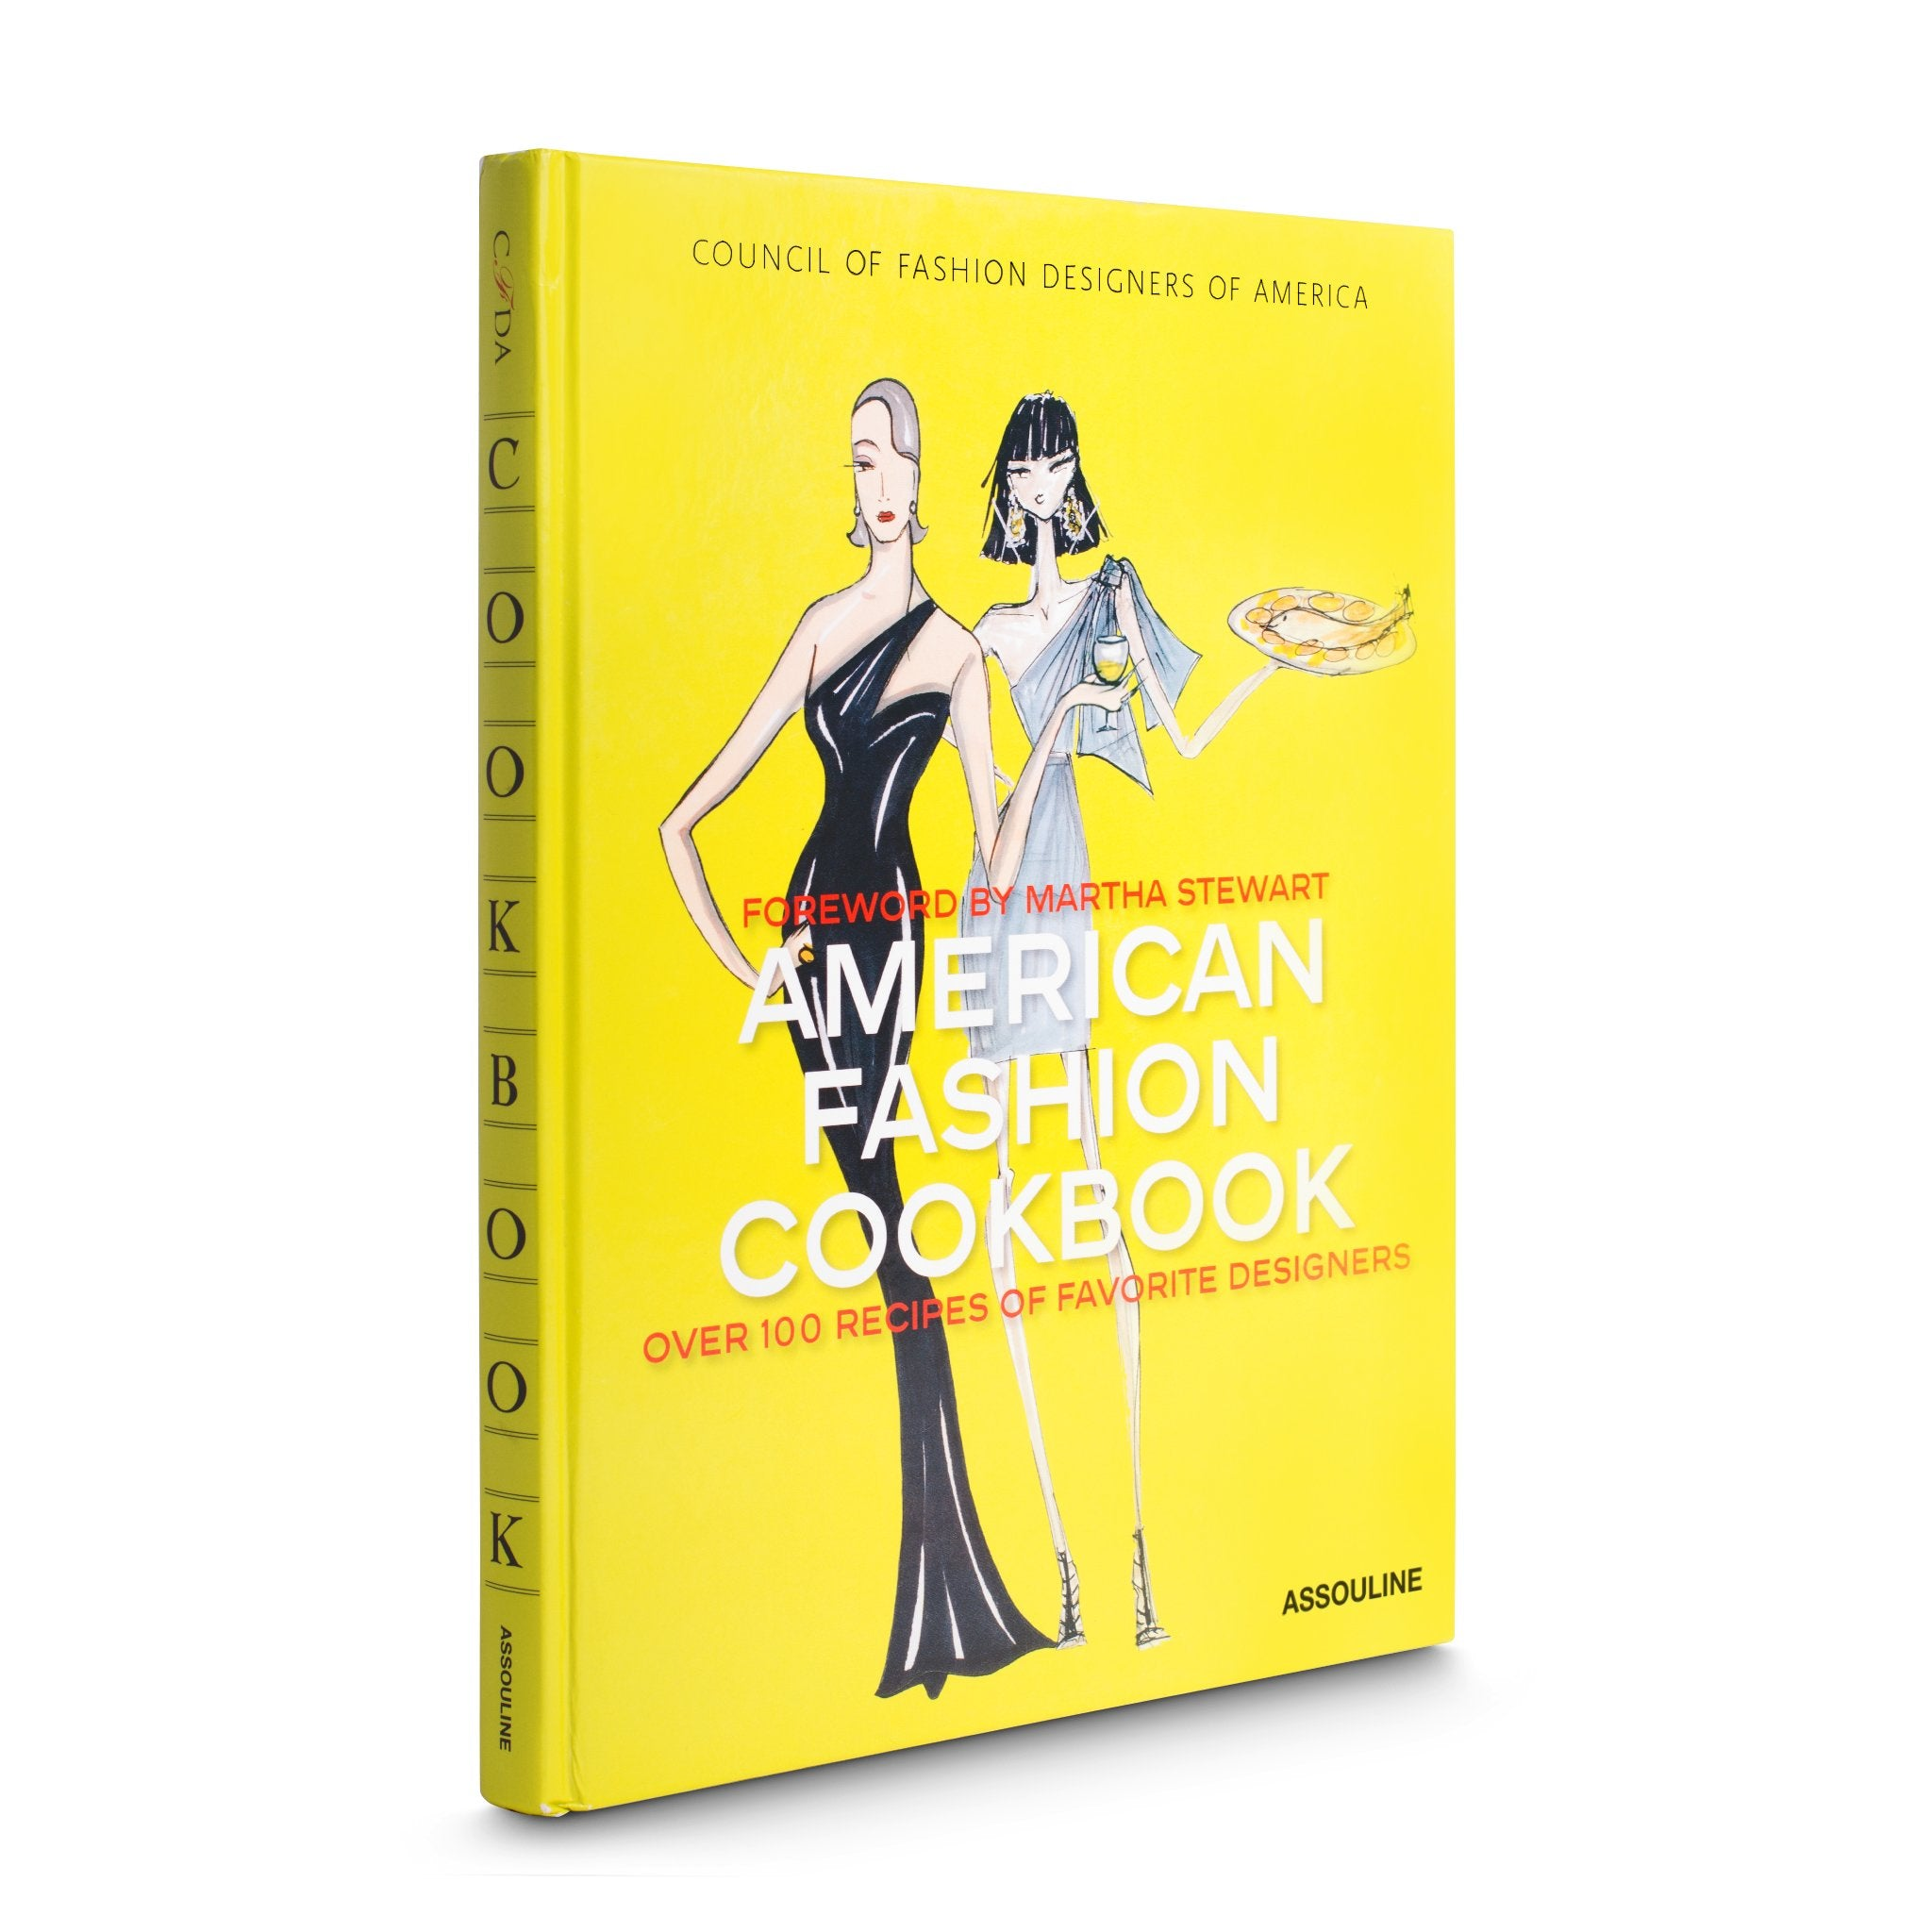 MaisonAssouline Books American Fashion Cookbook